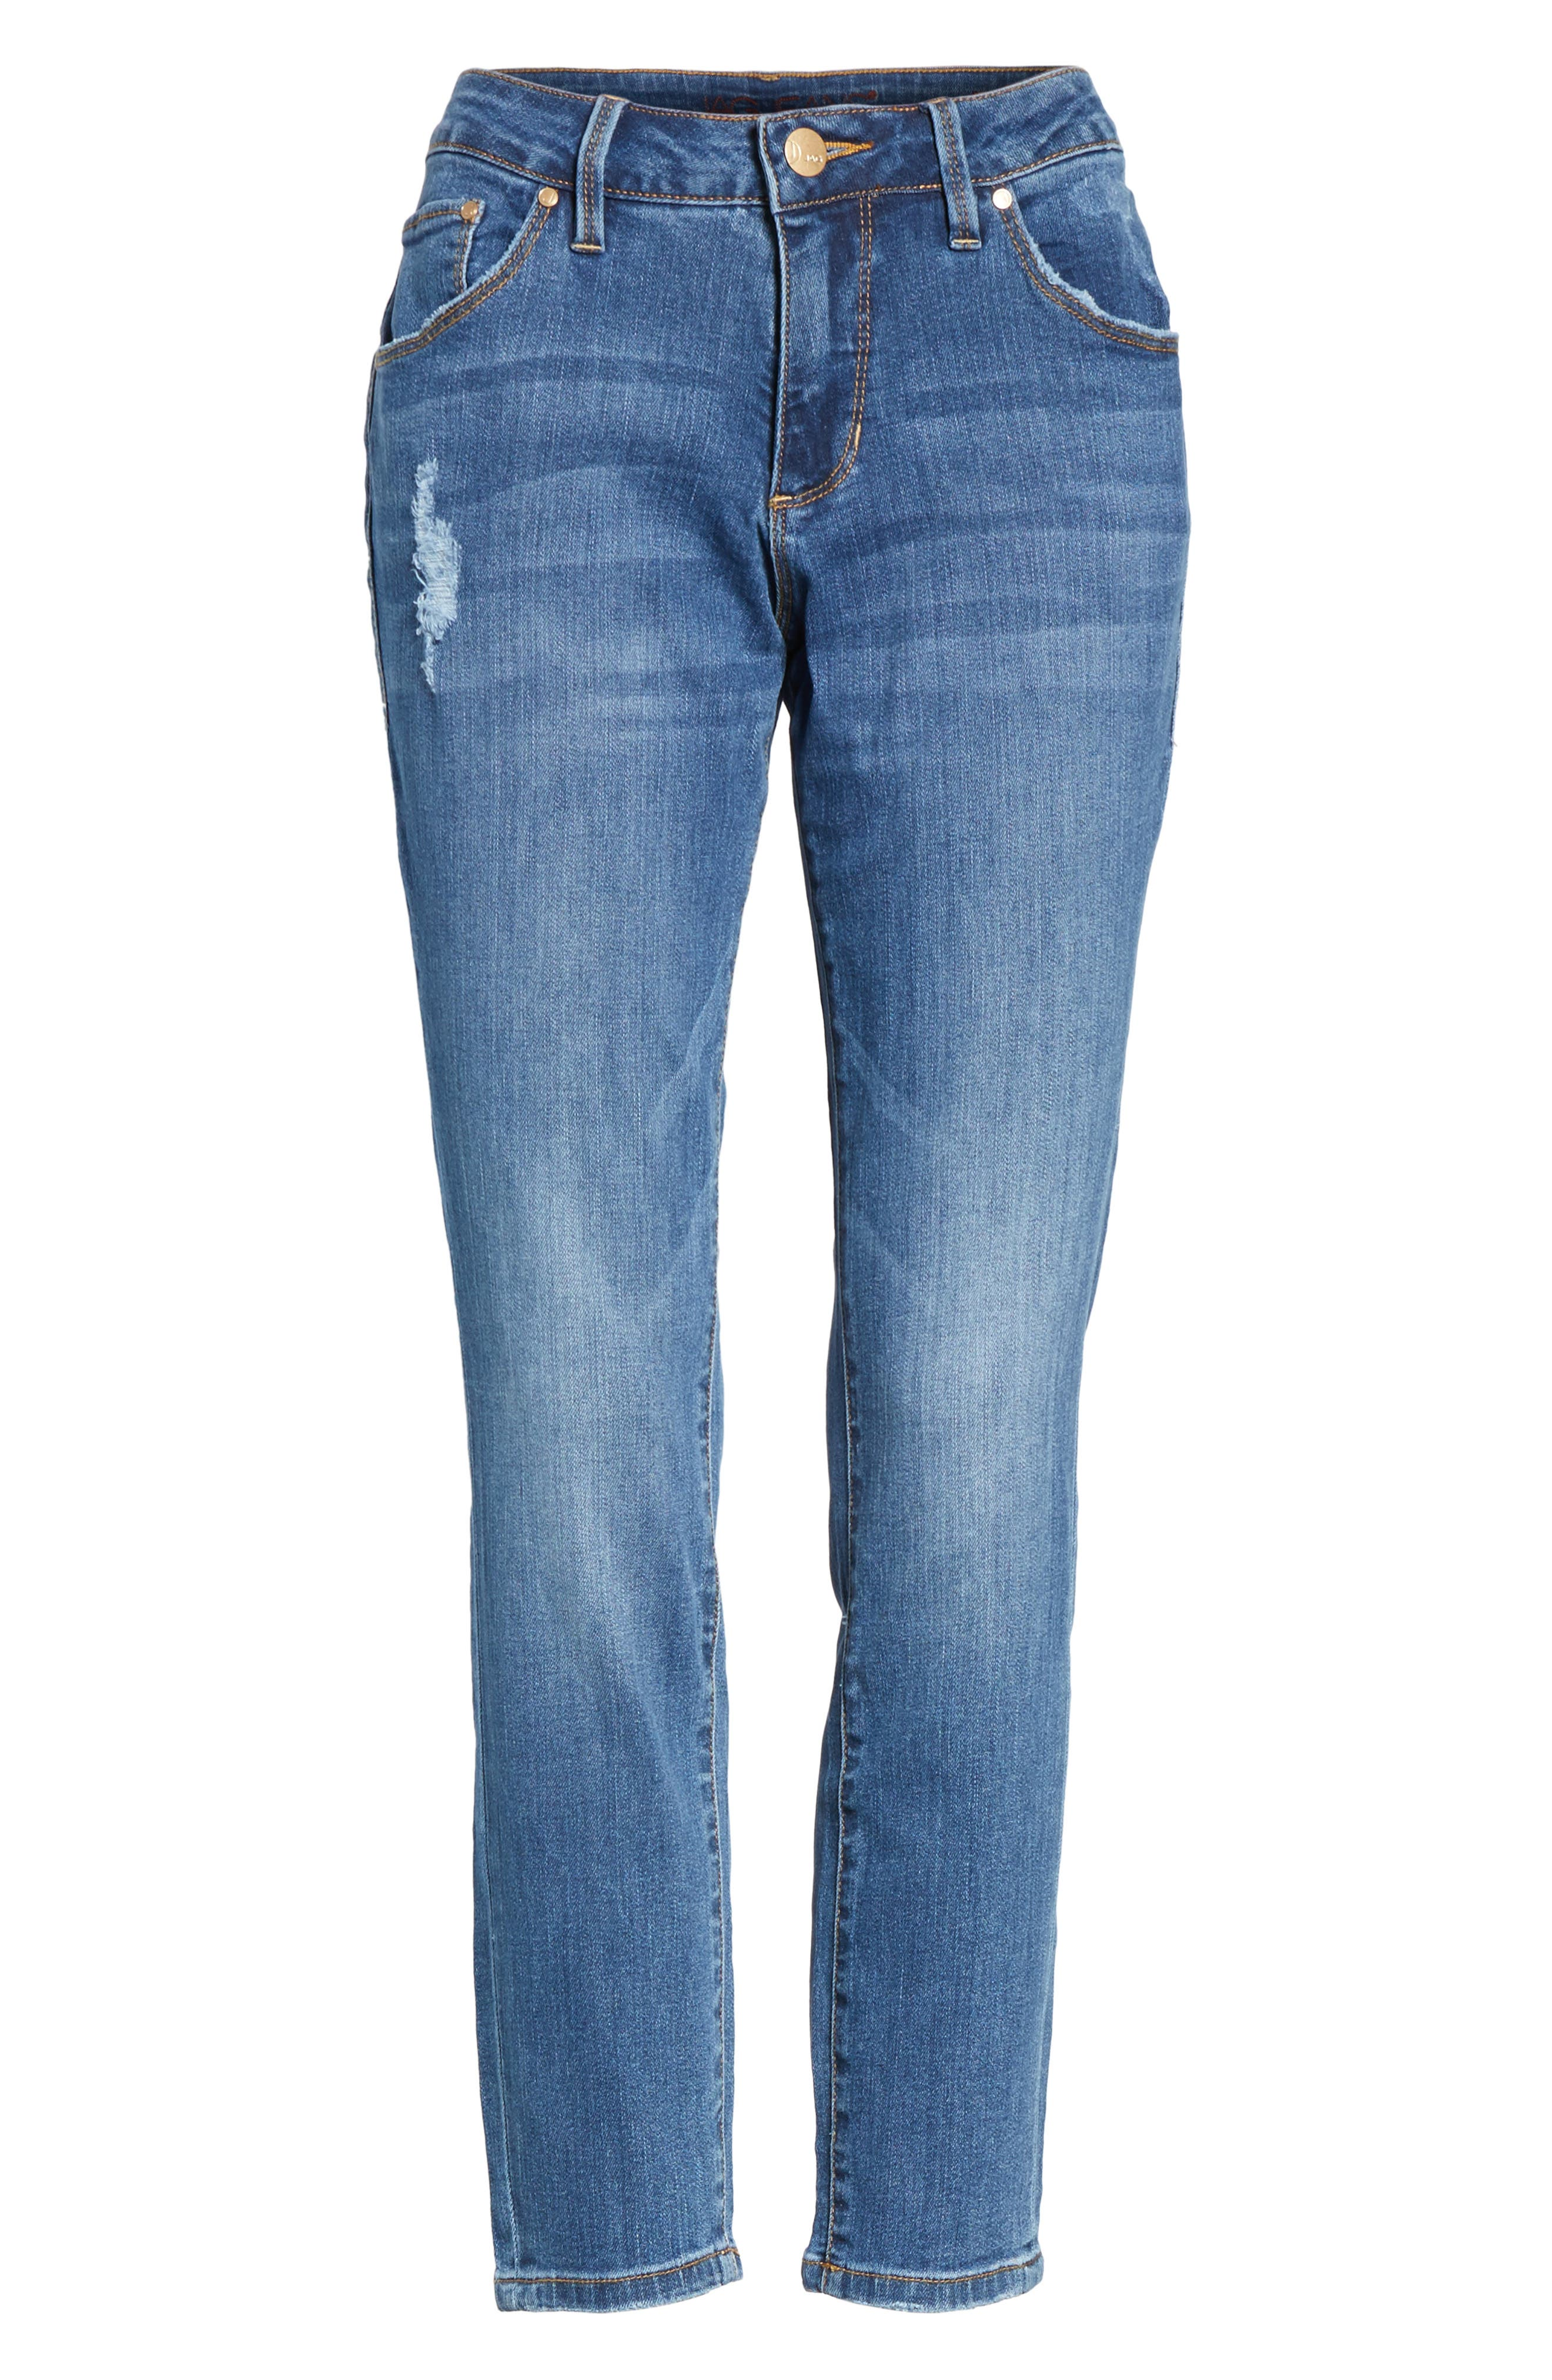 Mera Skinny Ankle Jeans,                             Alternate thumbnail 6, color,                             Mineral Wash